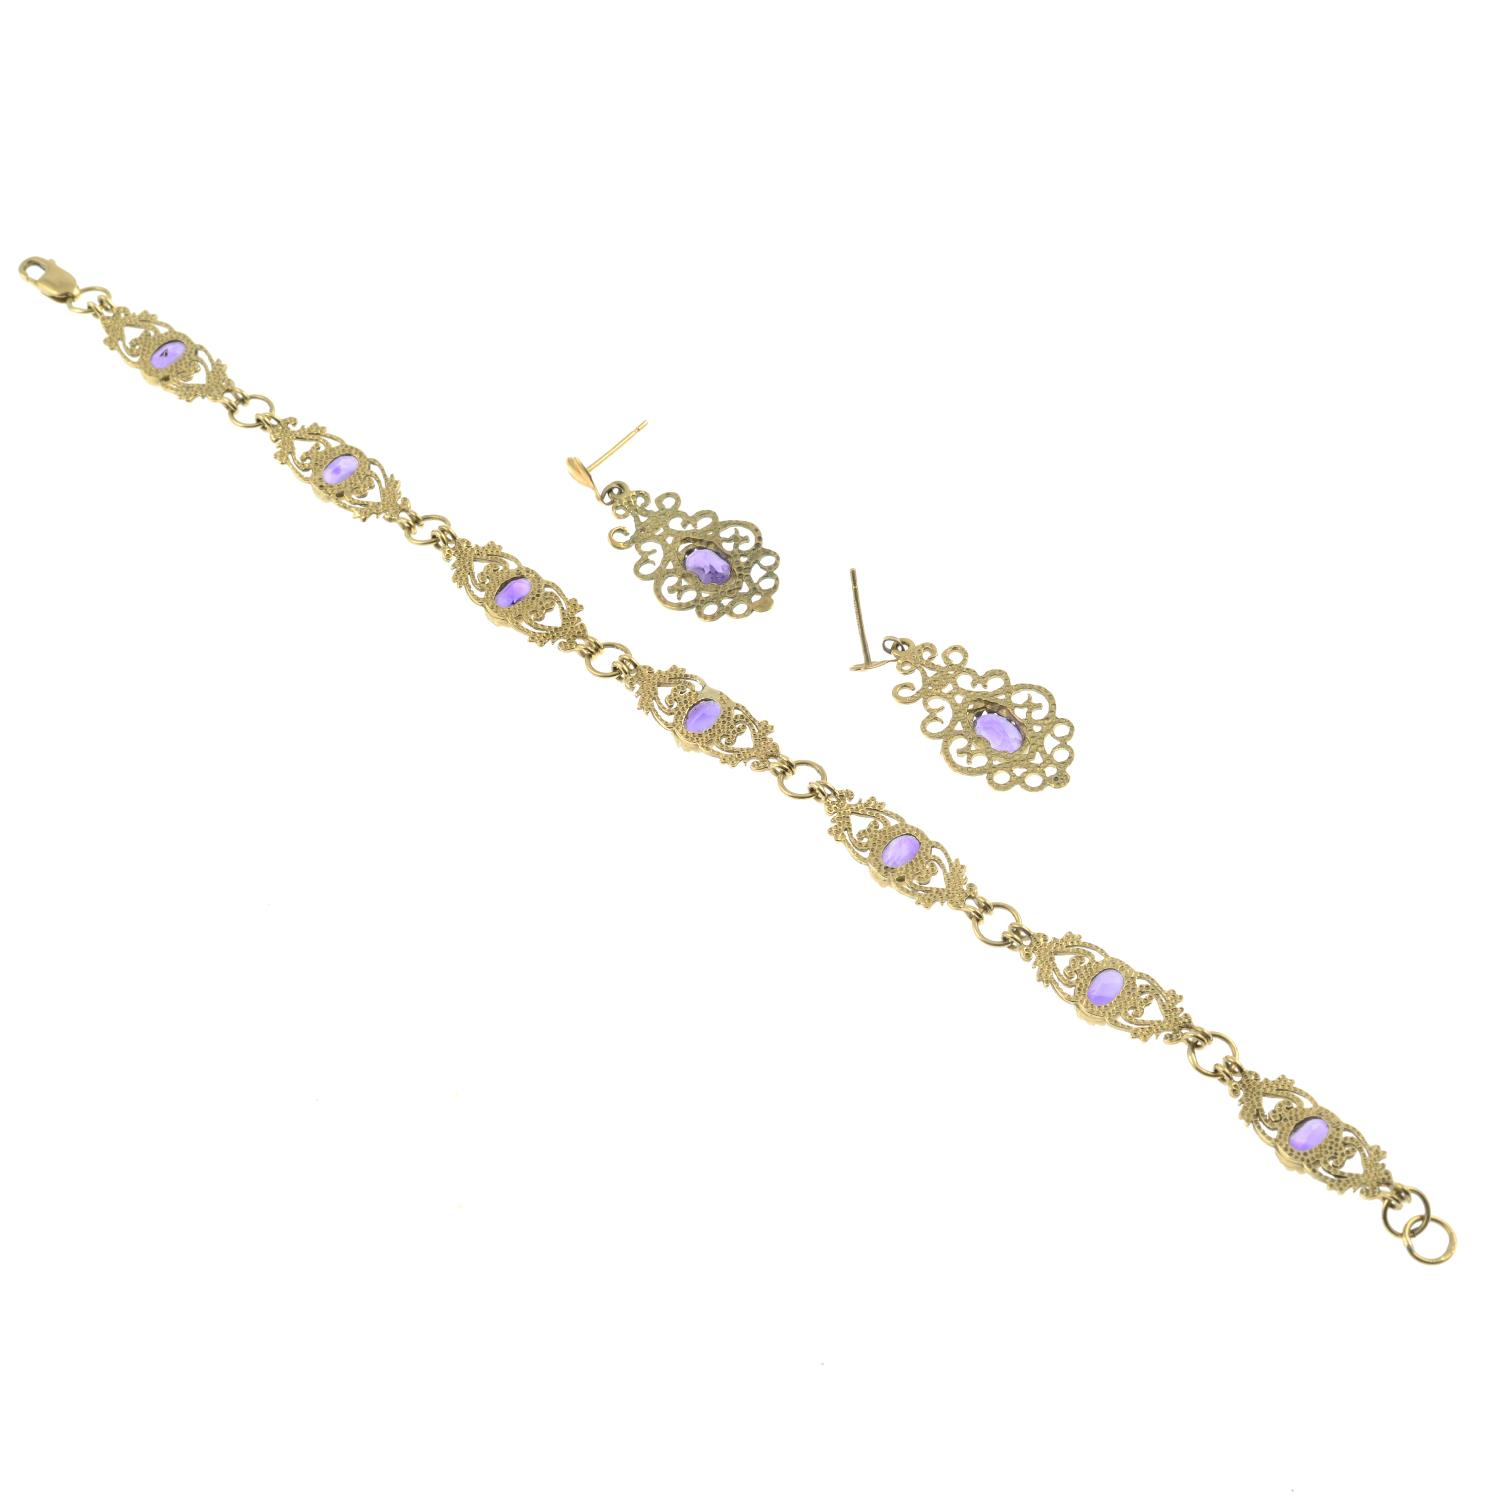 A amethyst bracelet with a pair of 9ct gold amethyst earrings.One with Hallmarks for Birmingham. - Image 3 of 3